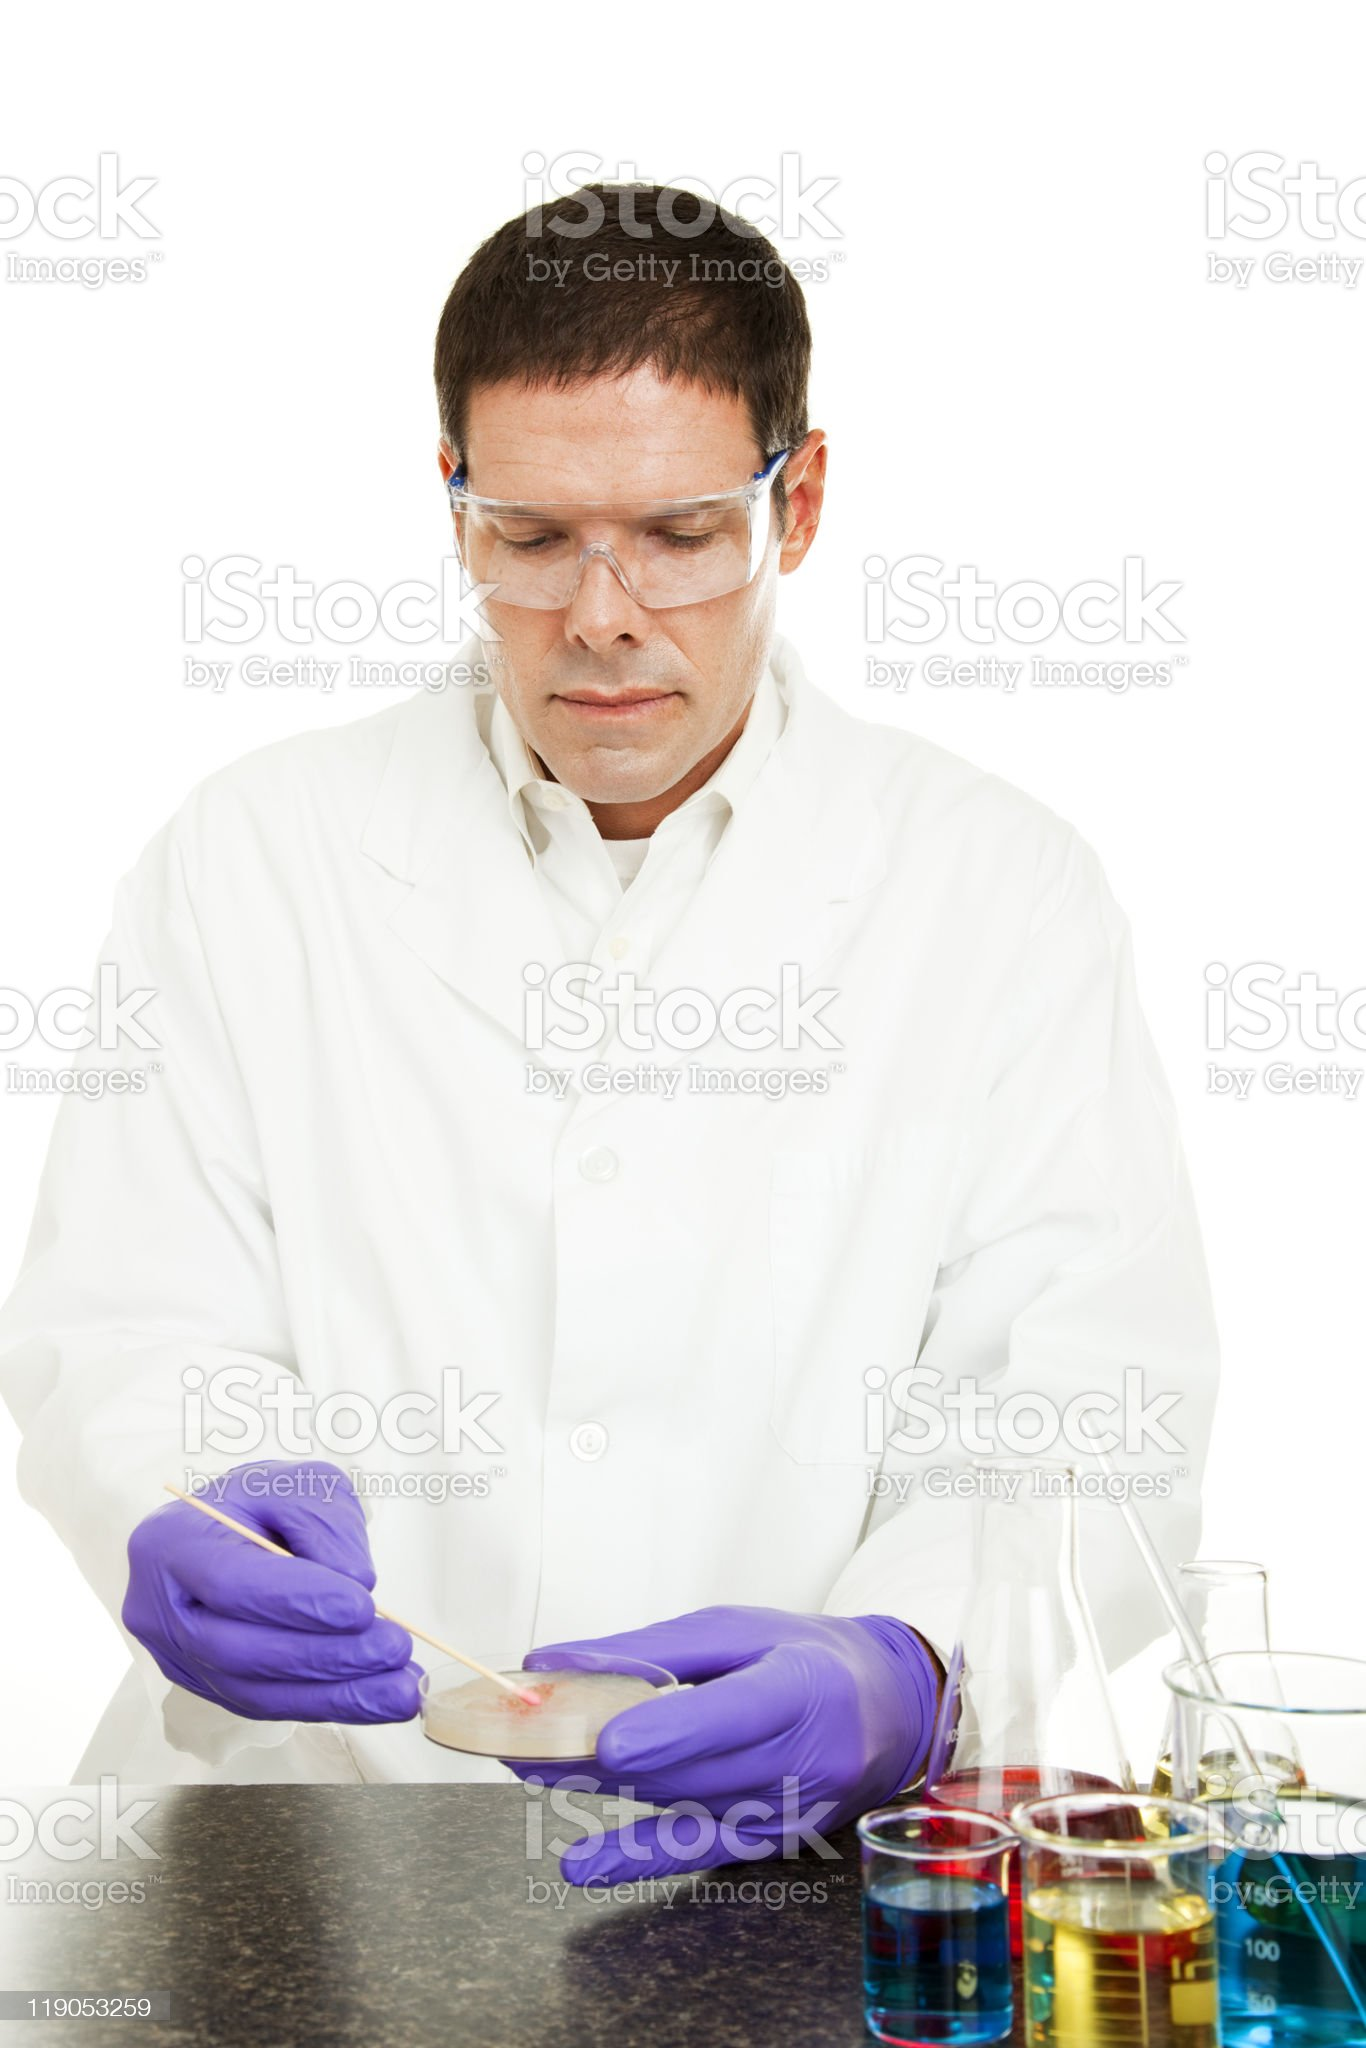 Scientific Research - Growing Culture royalty-free stock photo